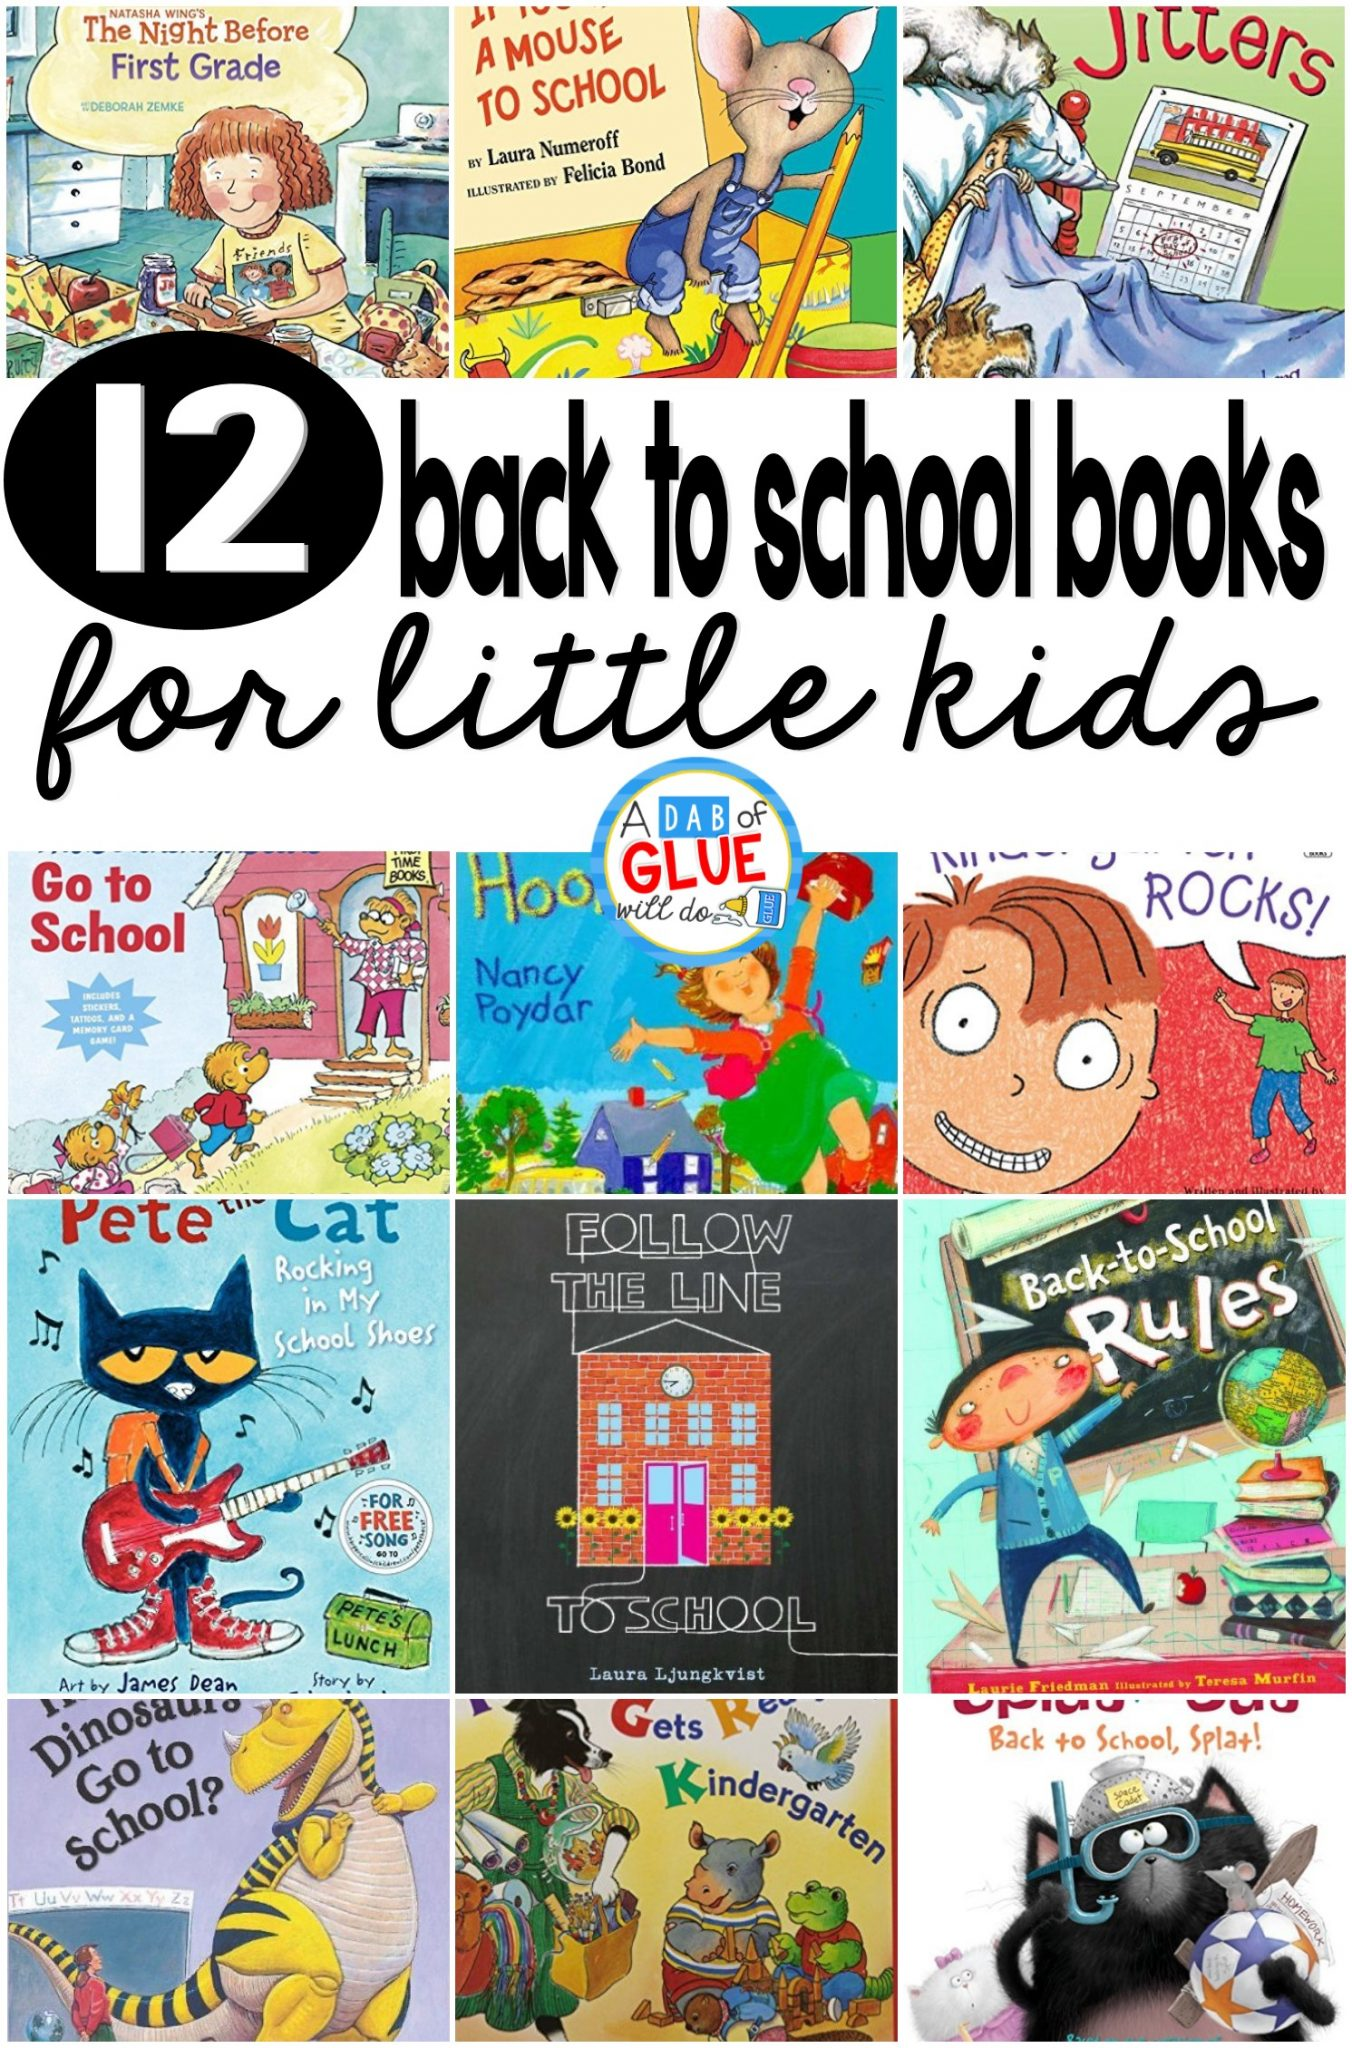 If you cannot tell already, I really do like using picture books in the classroom and there is no better way to introduce this to my students than the first few days of school. The first week of school always brings a wide range of emotions for students (and teachers too!). These back to school books will be a perfect way to help students feel more comfortable in the classroom and excited for the wonderful school year that is set to come.